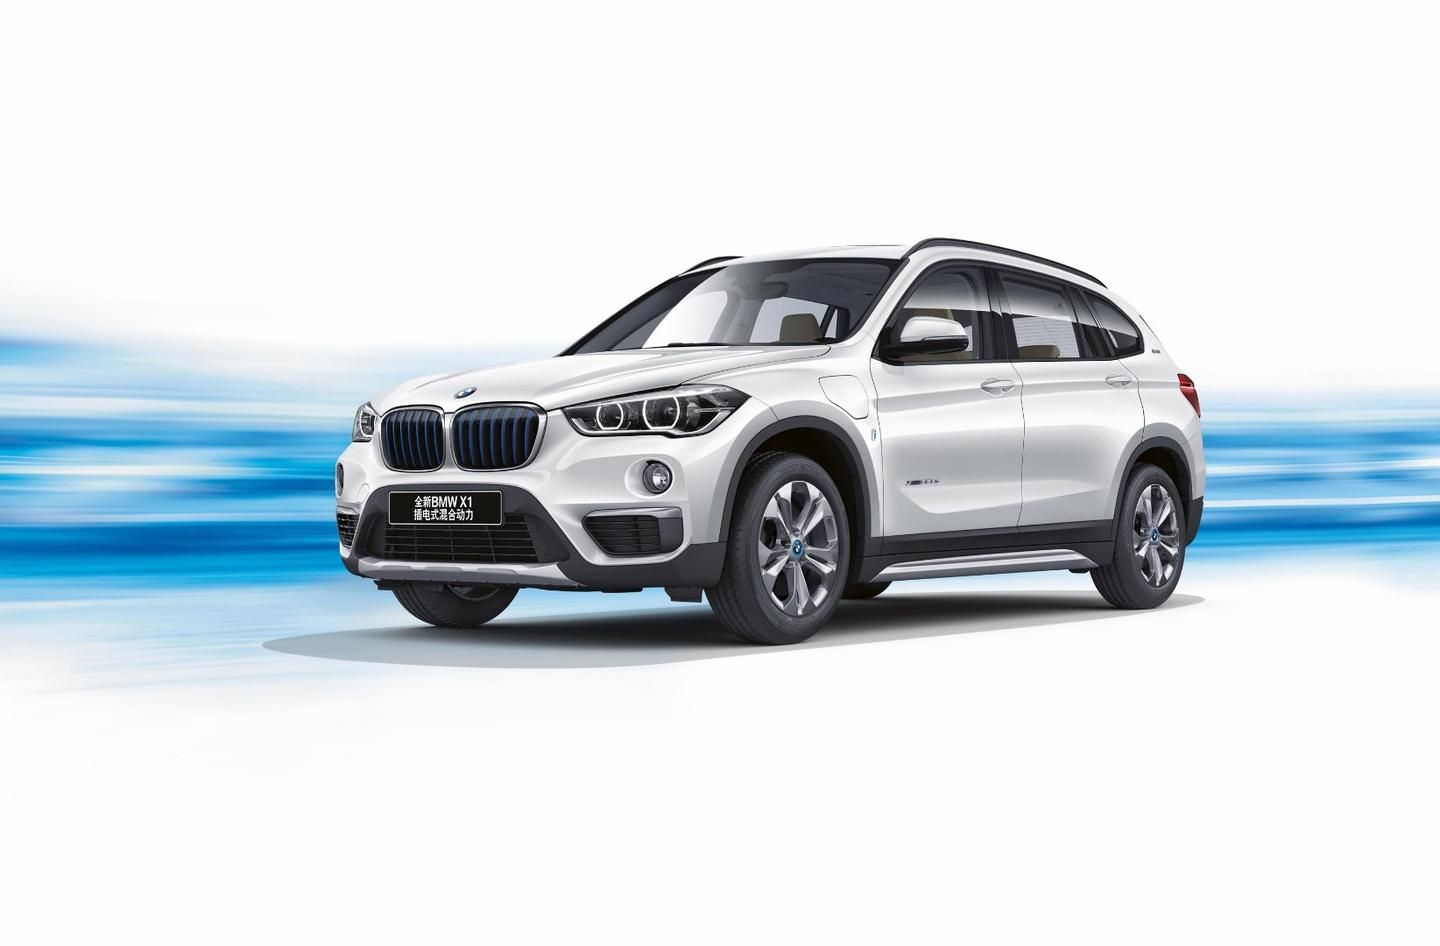 The new BMW X1 xDrive25Le iPerformance joins others in the German make's plug-in hybrid vehicle line